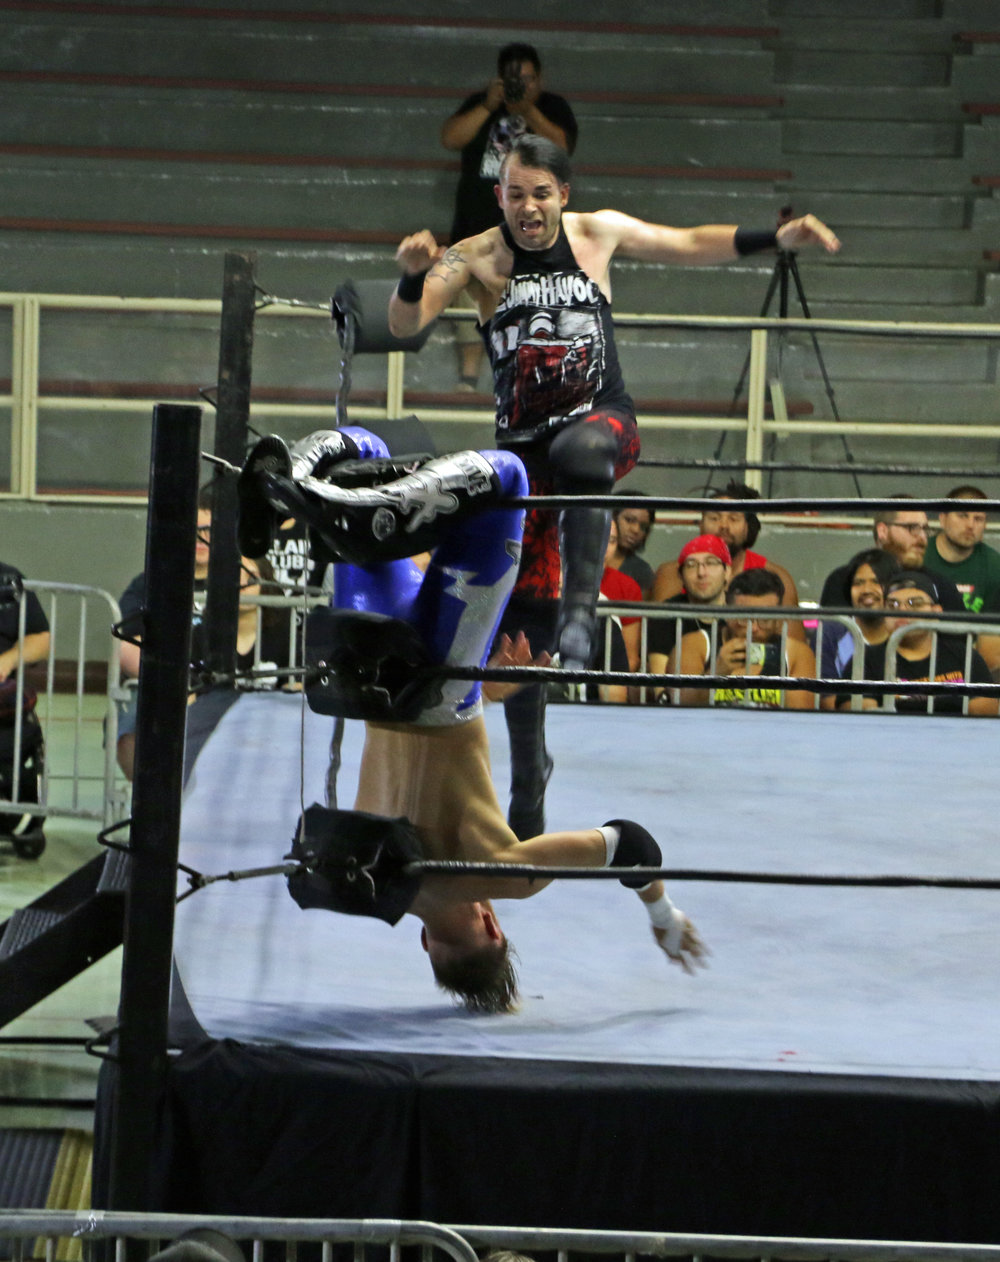 With Mark Andrews in the tree of woe, Jimmy Havoc delivers a kick in the corner.